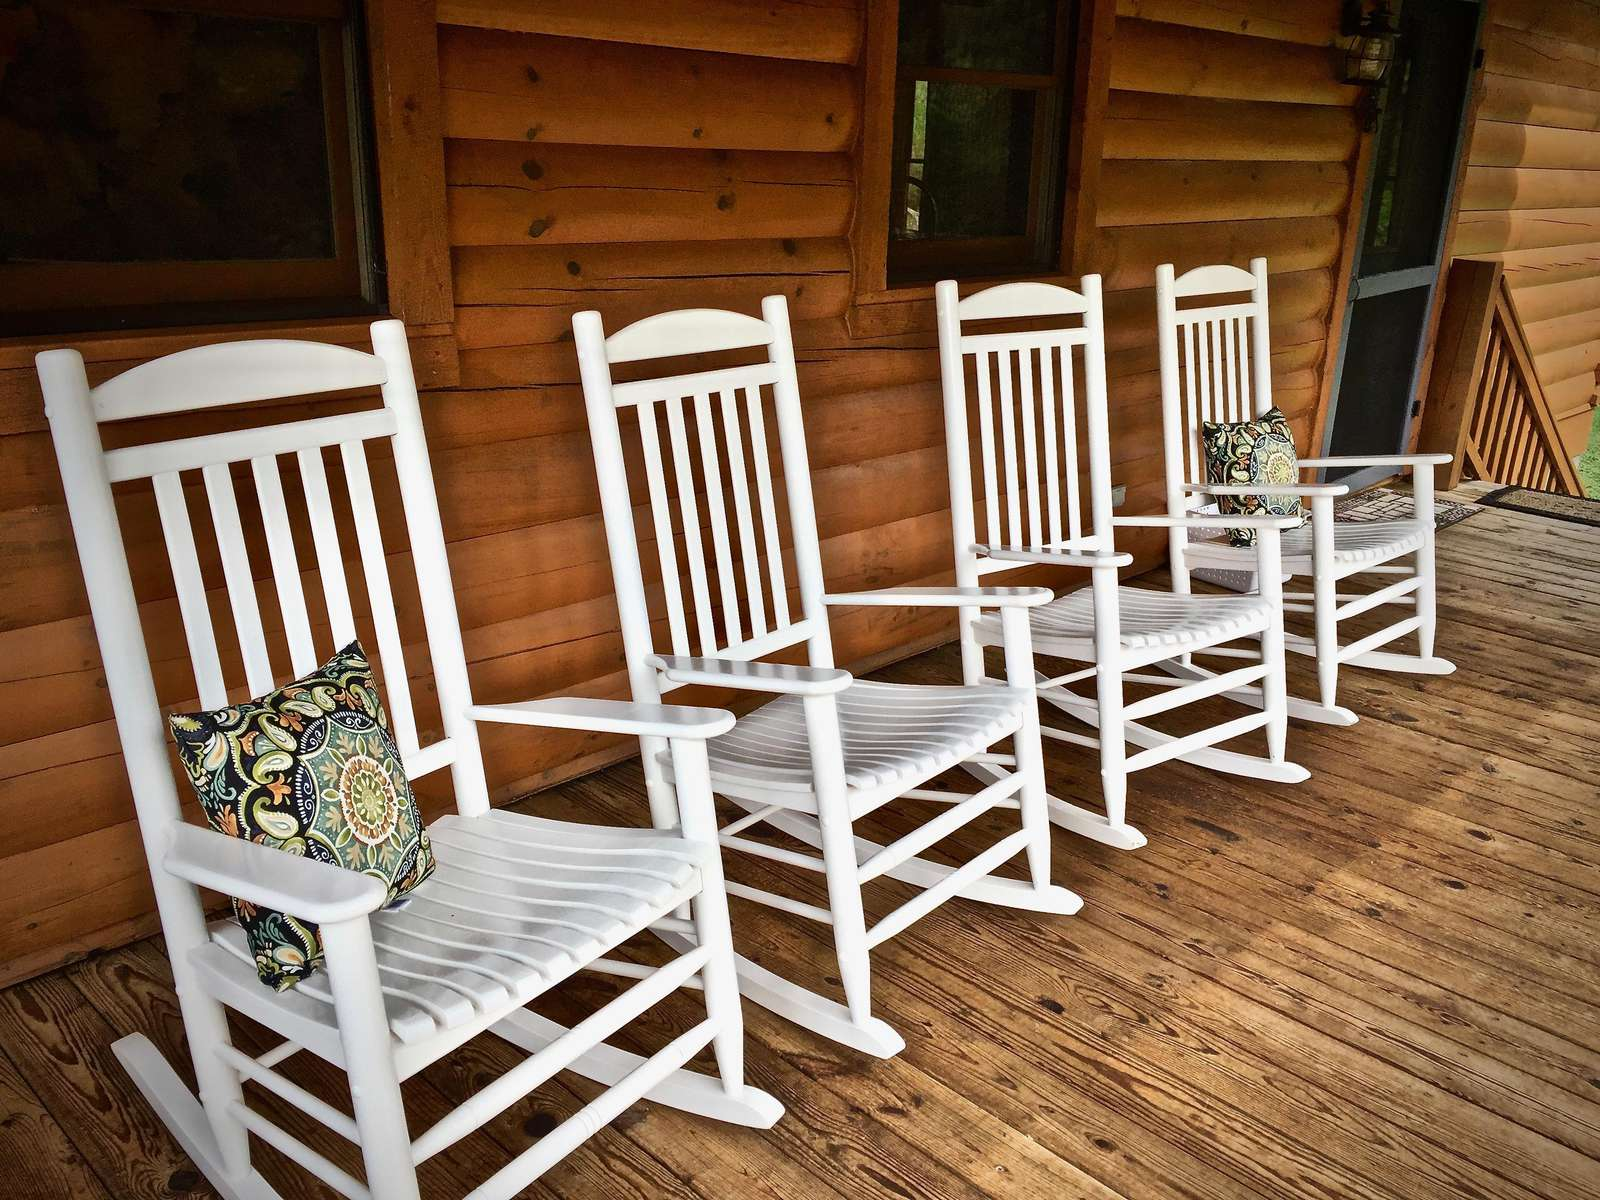 Old fashioned Rocking Chairs, and two Spacious Covered Decks to enjoy the outdoors rain or shine!